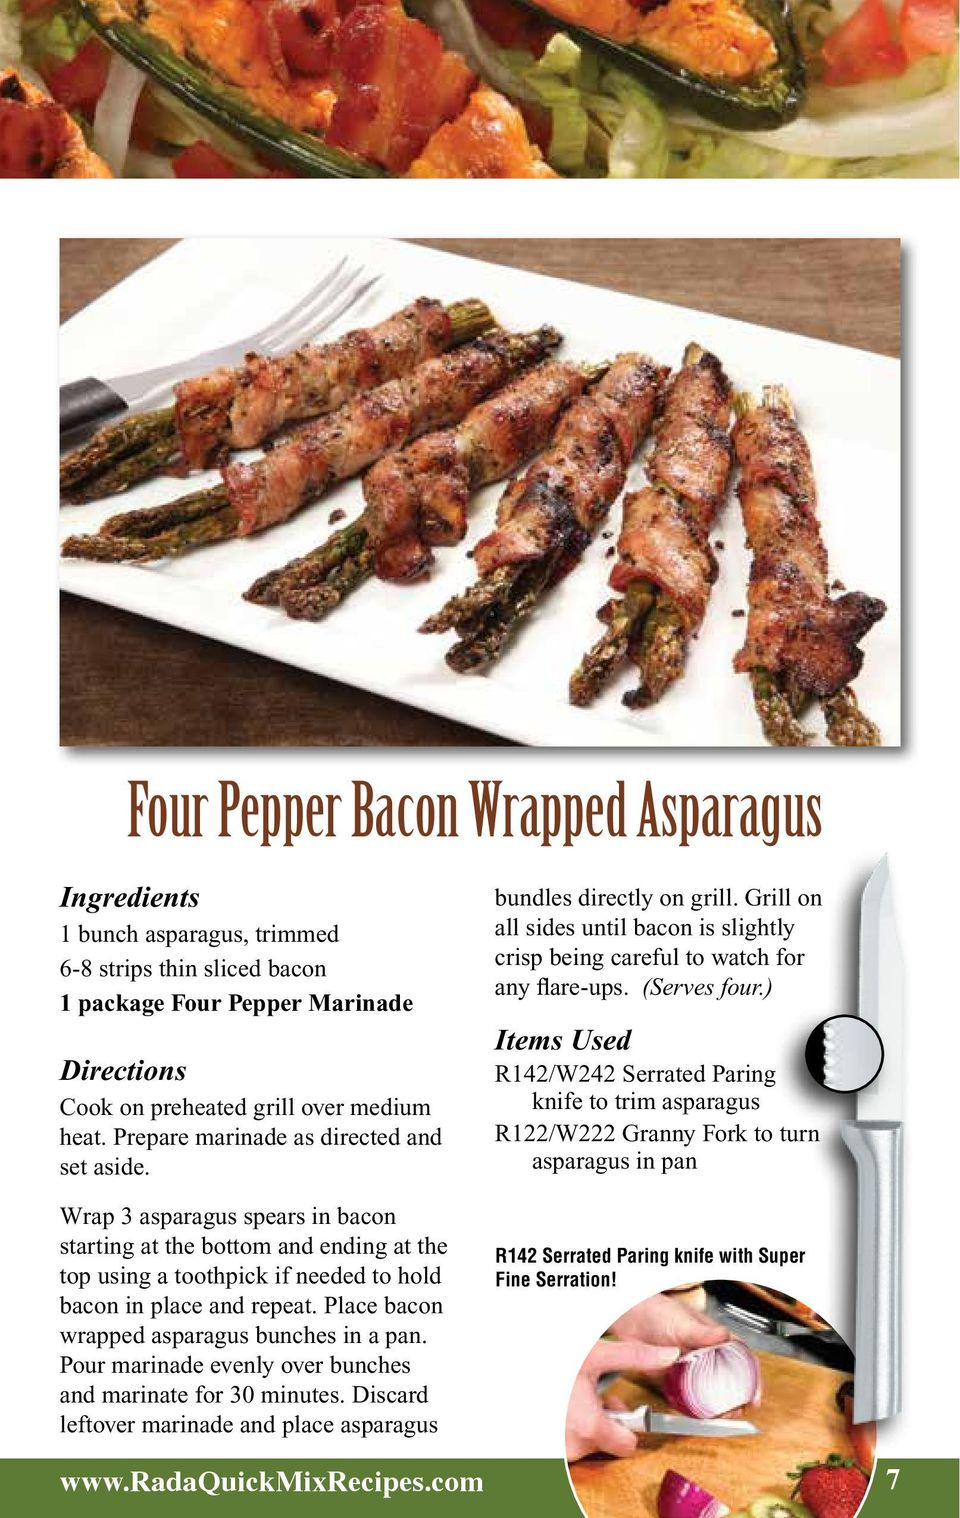 Place bacon wrapped asparagus bunches in a pan. Pour marinade evenly over bunches and marinate for 30 minutes. Discard leftover marinade and place asparagus bundles directly on grill.